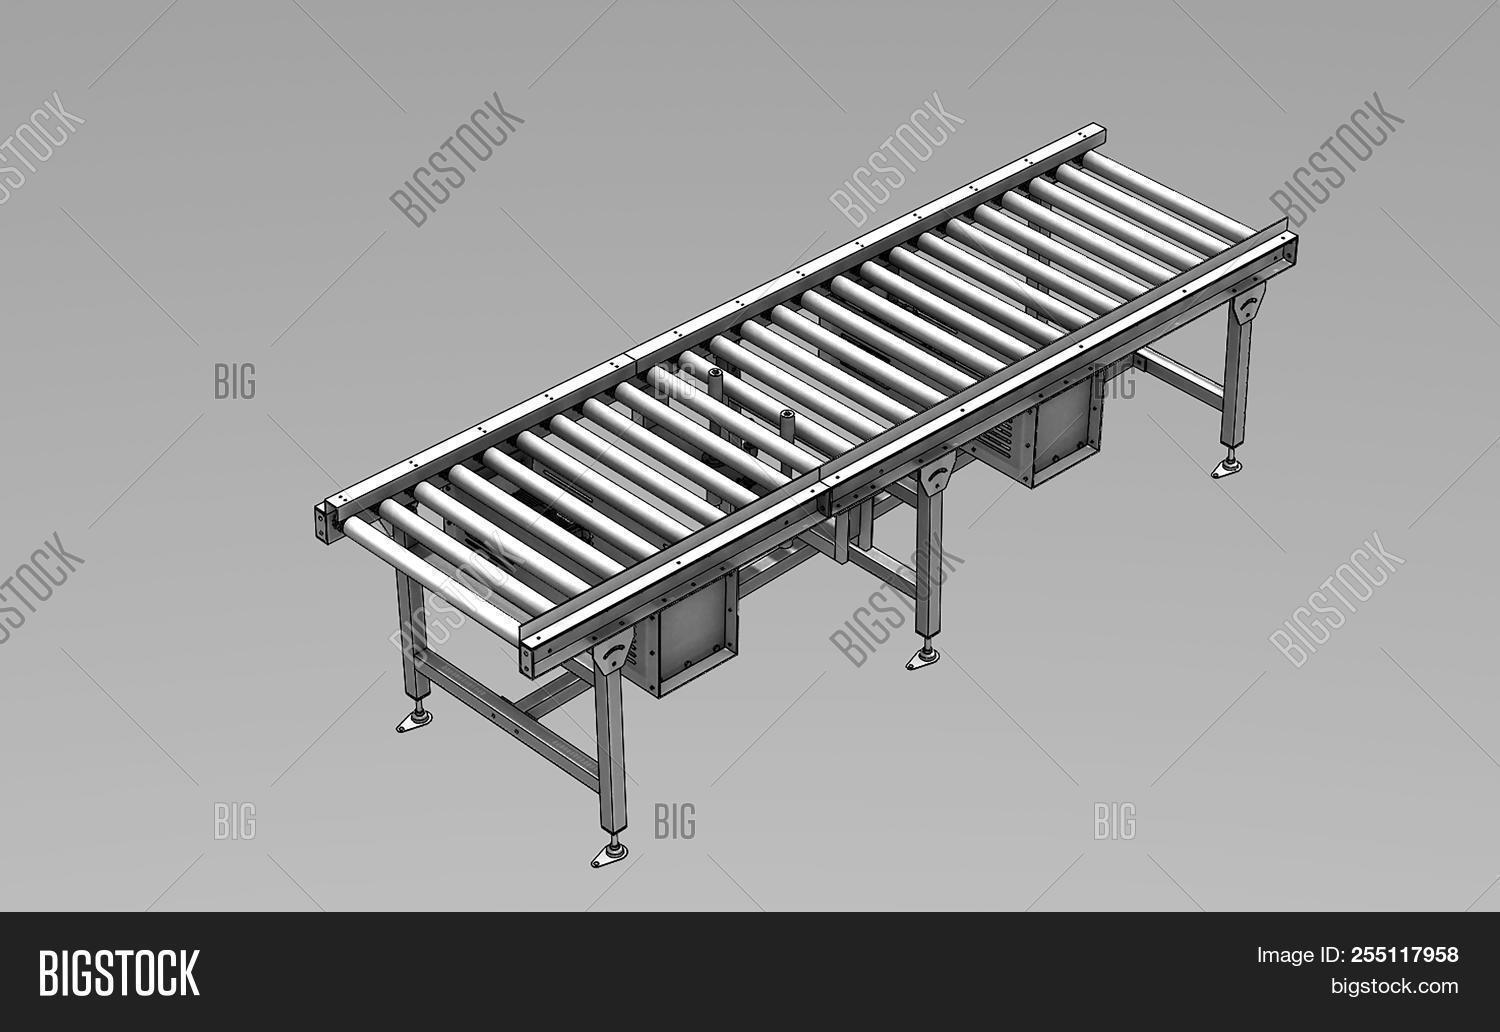 3d,automated,background,belt,black,business,cargo,container,conveyor,deliver,distribution,empty,equipment,factory,freight,illustration,industrial,industry,isometric,line,logistics,machine,machinery,manufacture,merchandise,metal,moving,order,package,packing,parcel,plant,post,product,production,render,rendering,roller,rubber,shipping,shopping,stopper,storage,technology,transport,transportation,warehouse,white